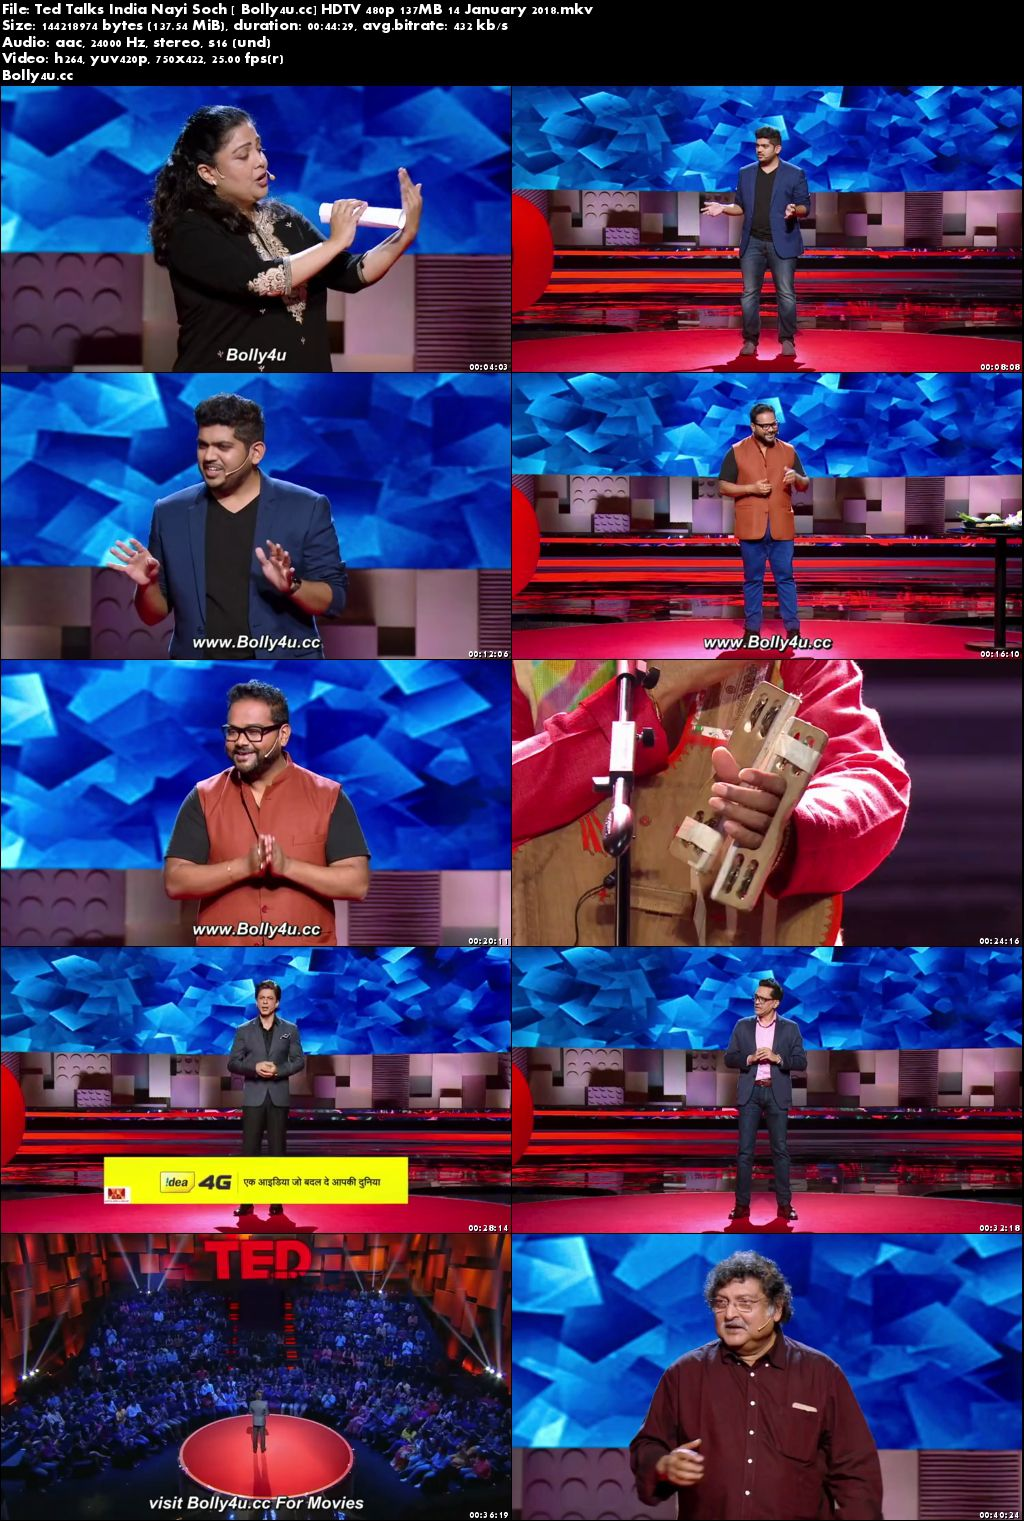 Ted Talks India HDTV 480p 130MB 14 January 2018 Download